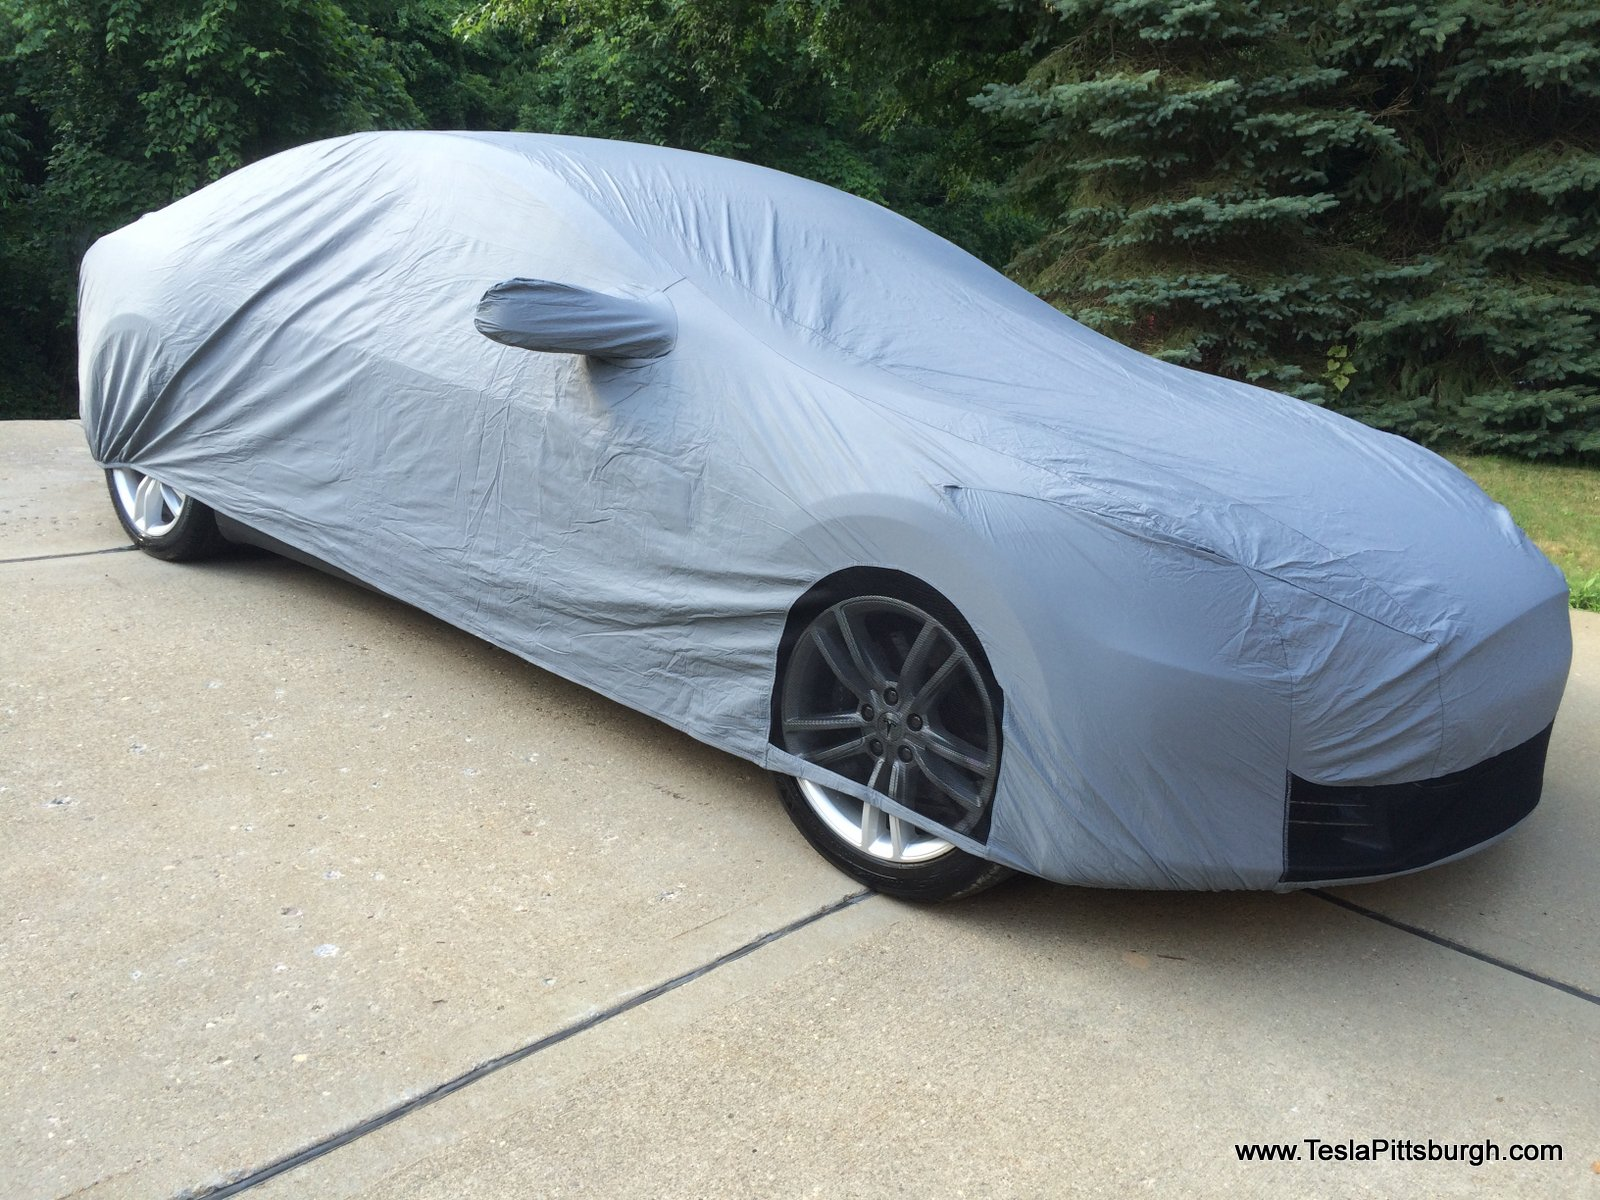 Tesla Model S car cover with mesh airflow